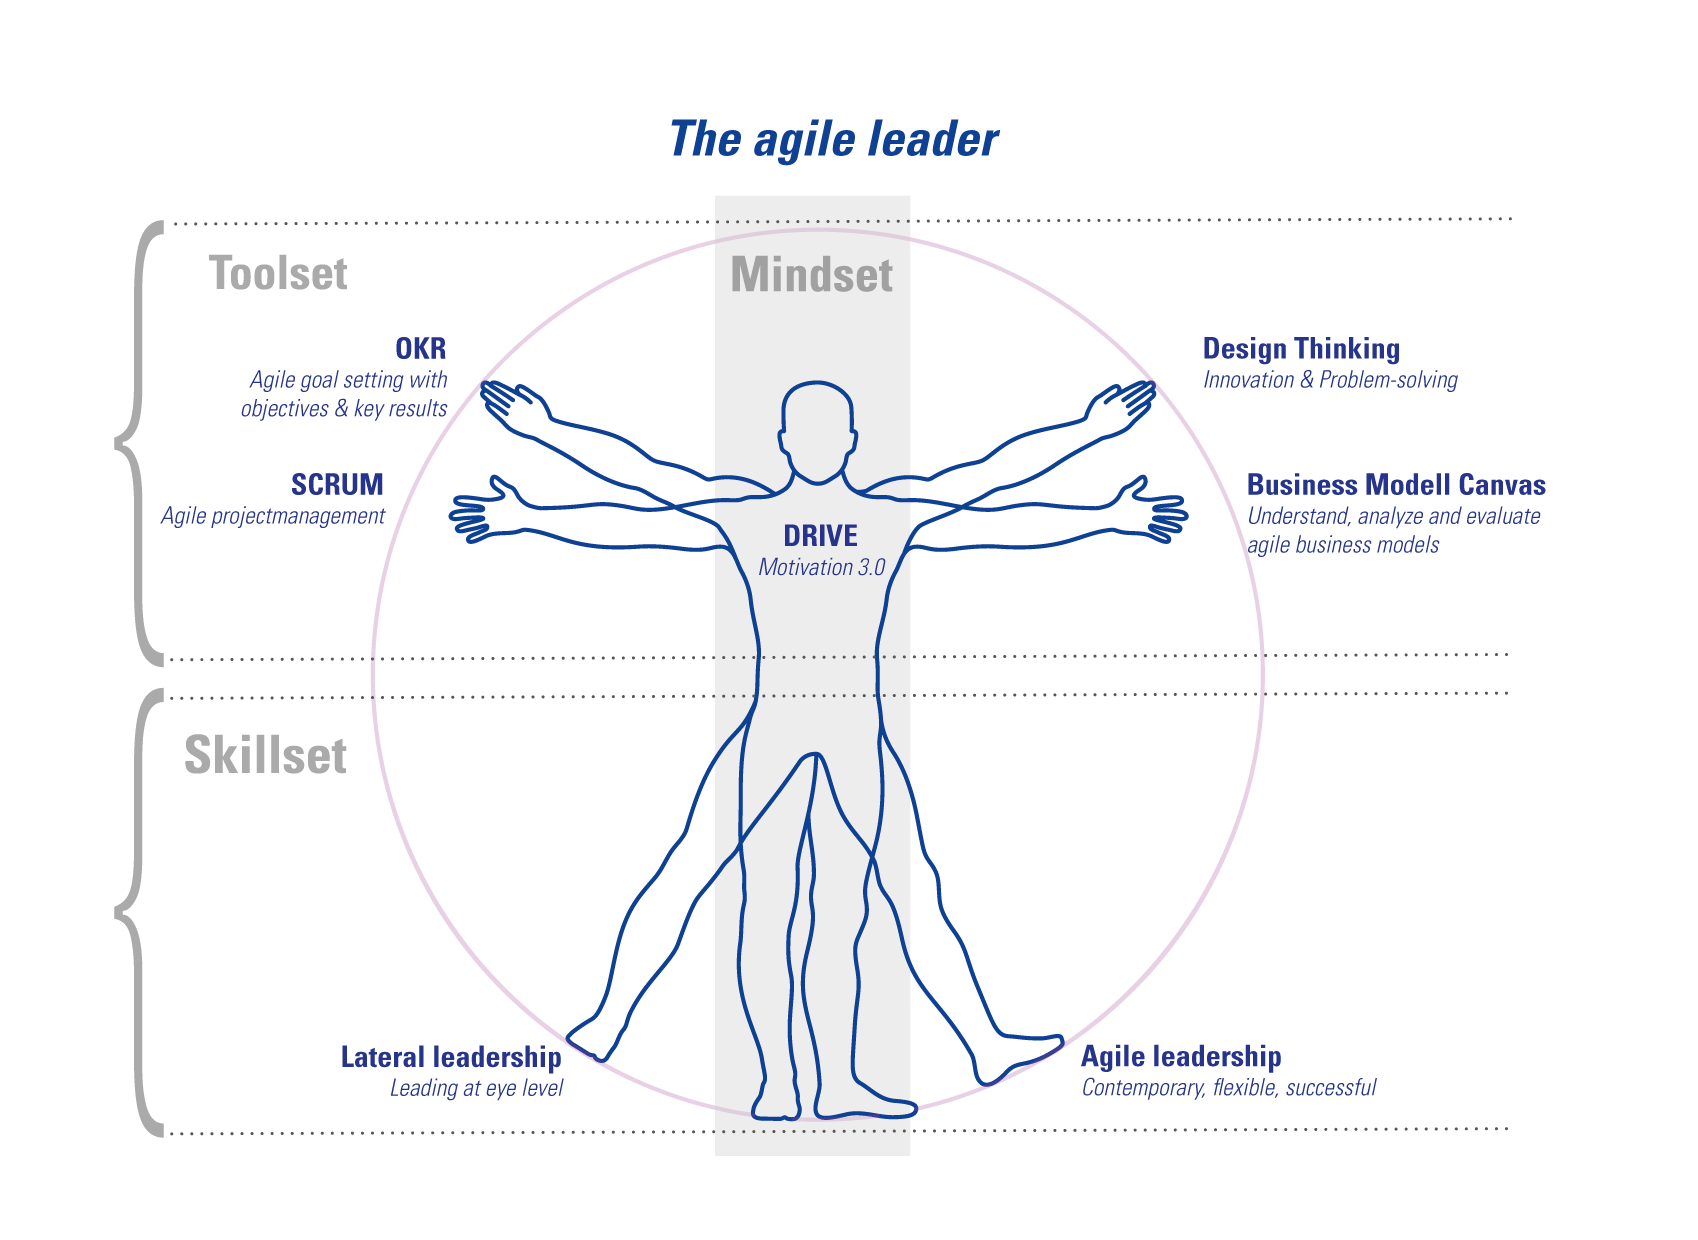 agile leader in digital transformation